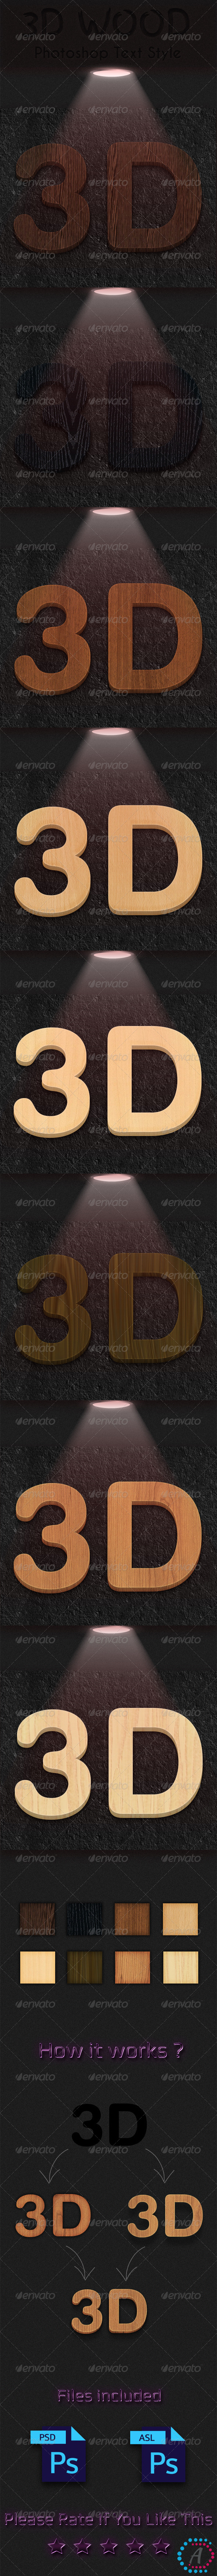 GraphicRiver Wood Text Style 3D&HD 7606266